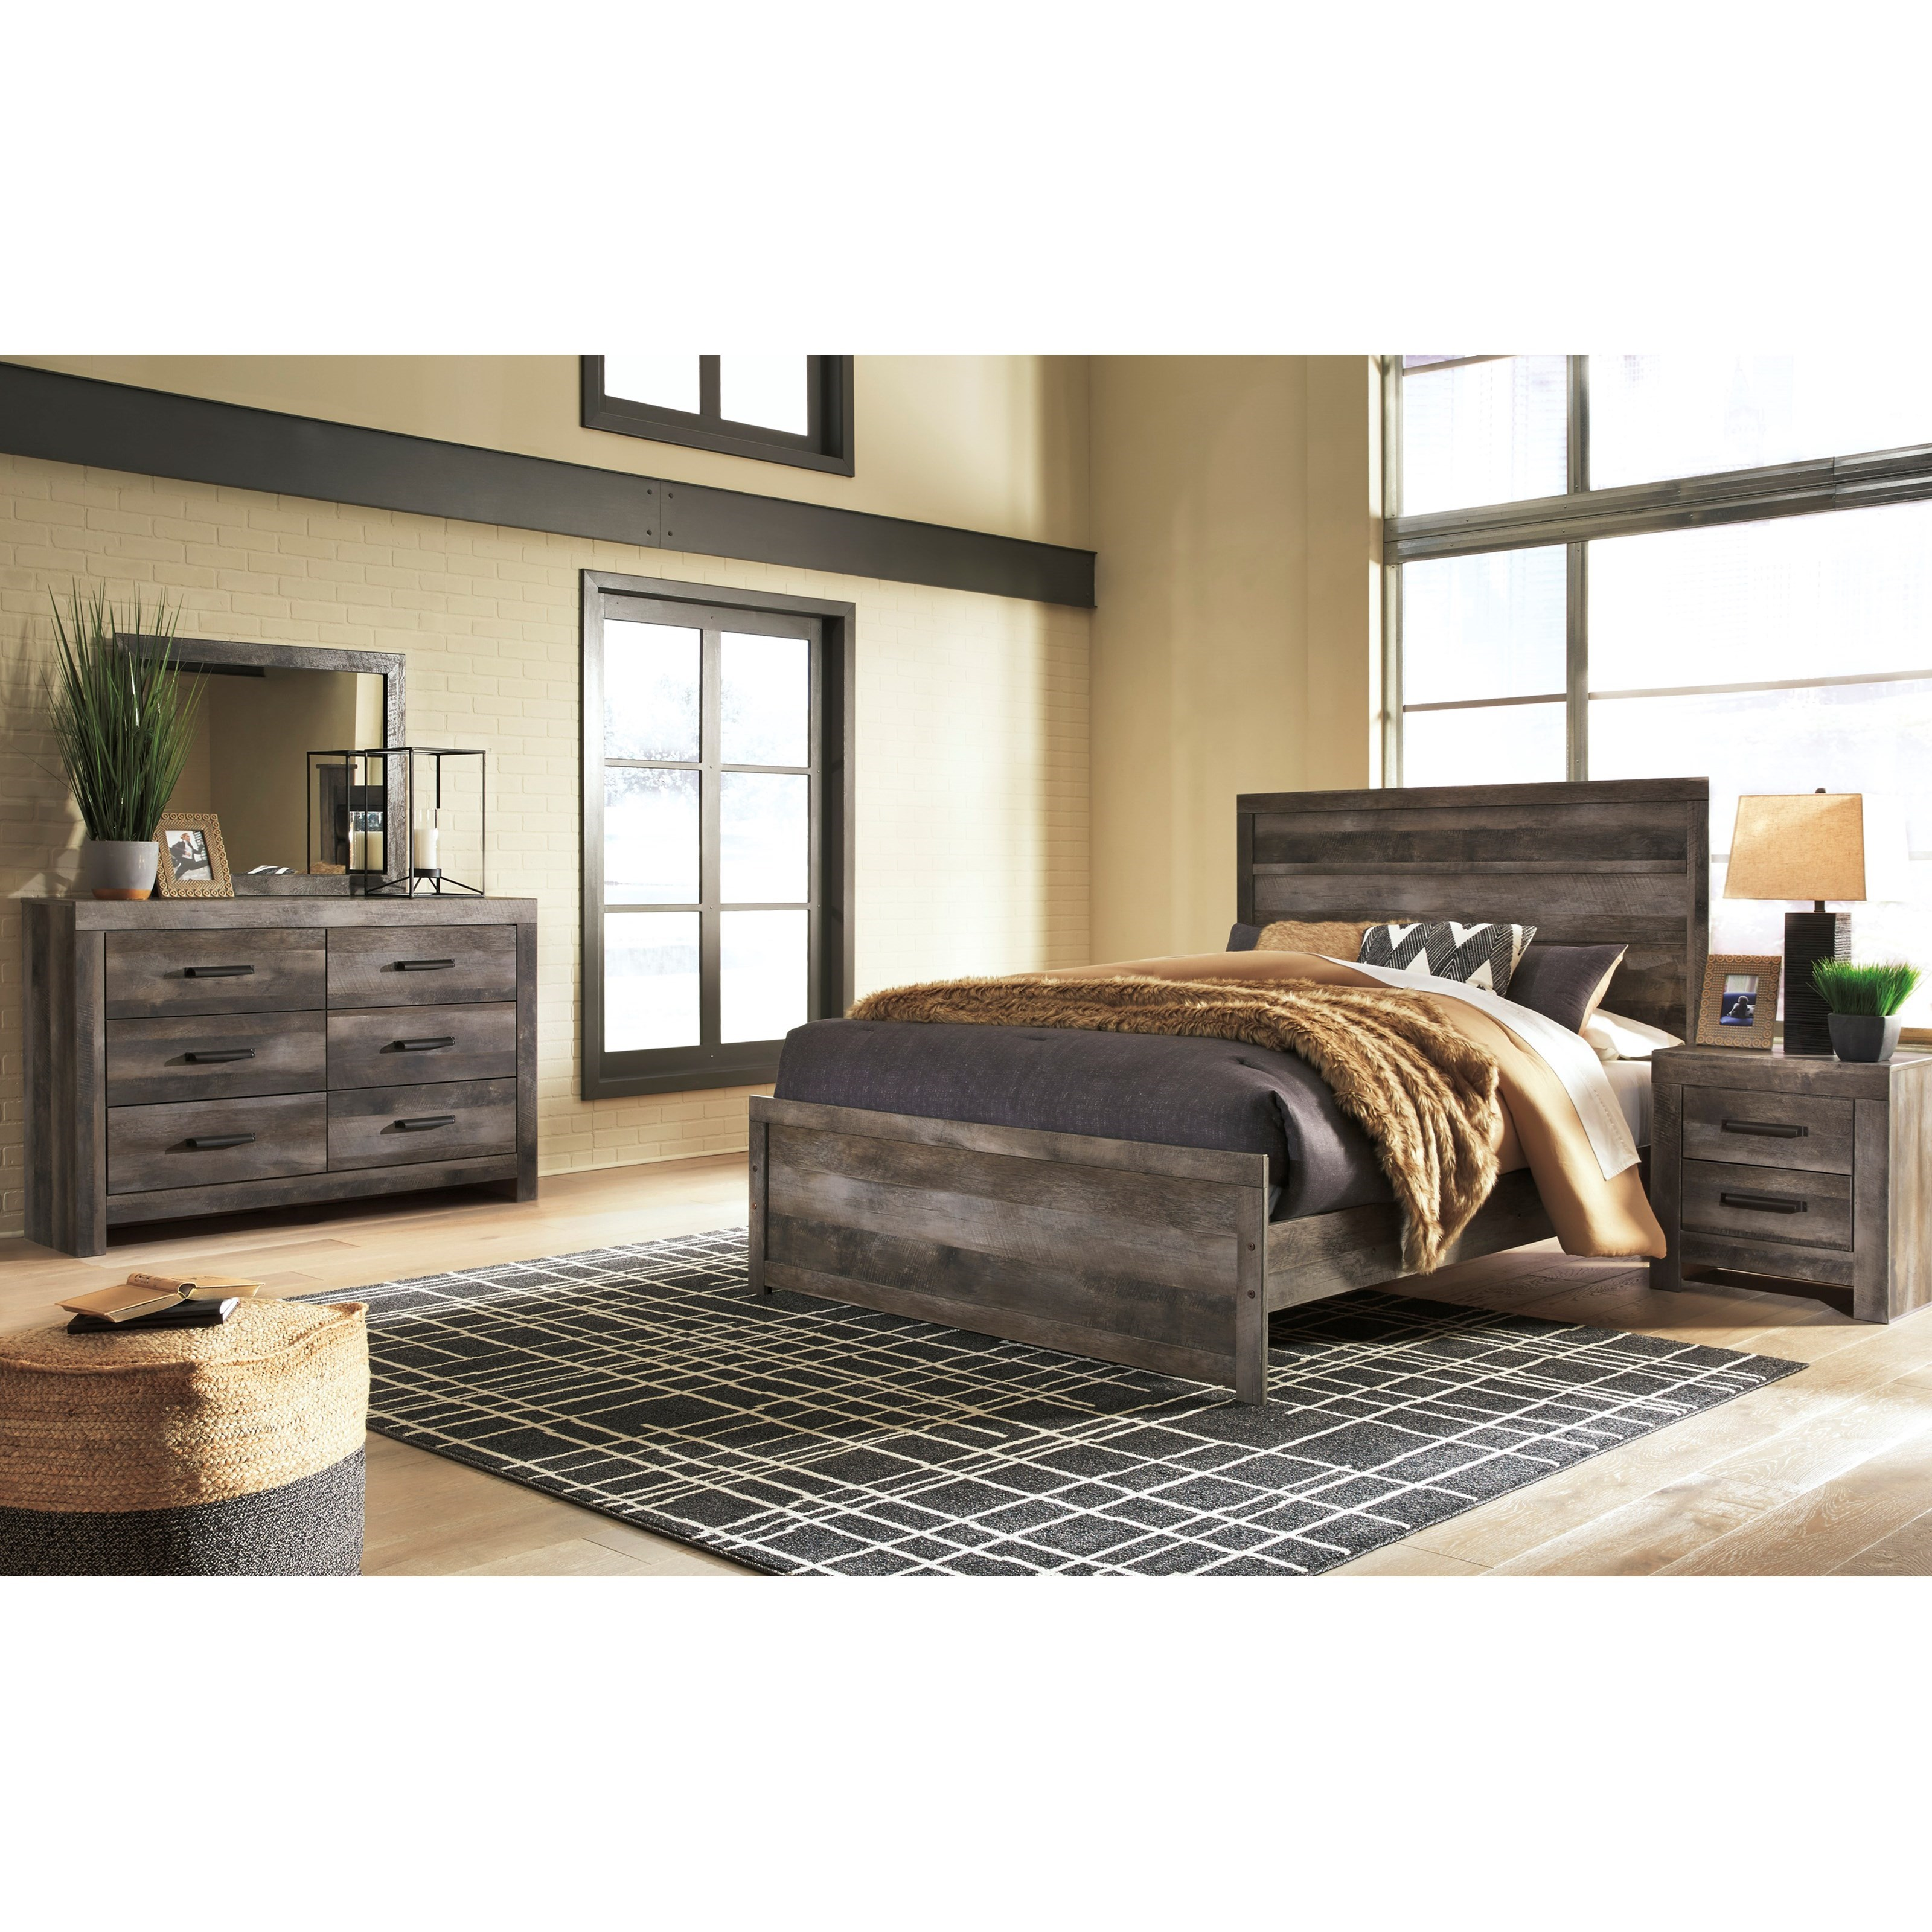 Signature Design By Ashley Wynnlow Queen Bedroom Group Godby Home Furnishings Bedroom Groups